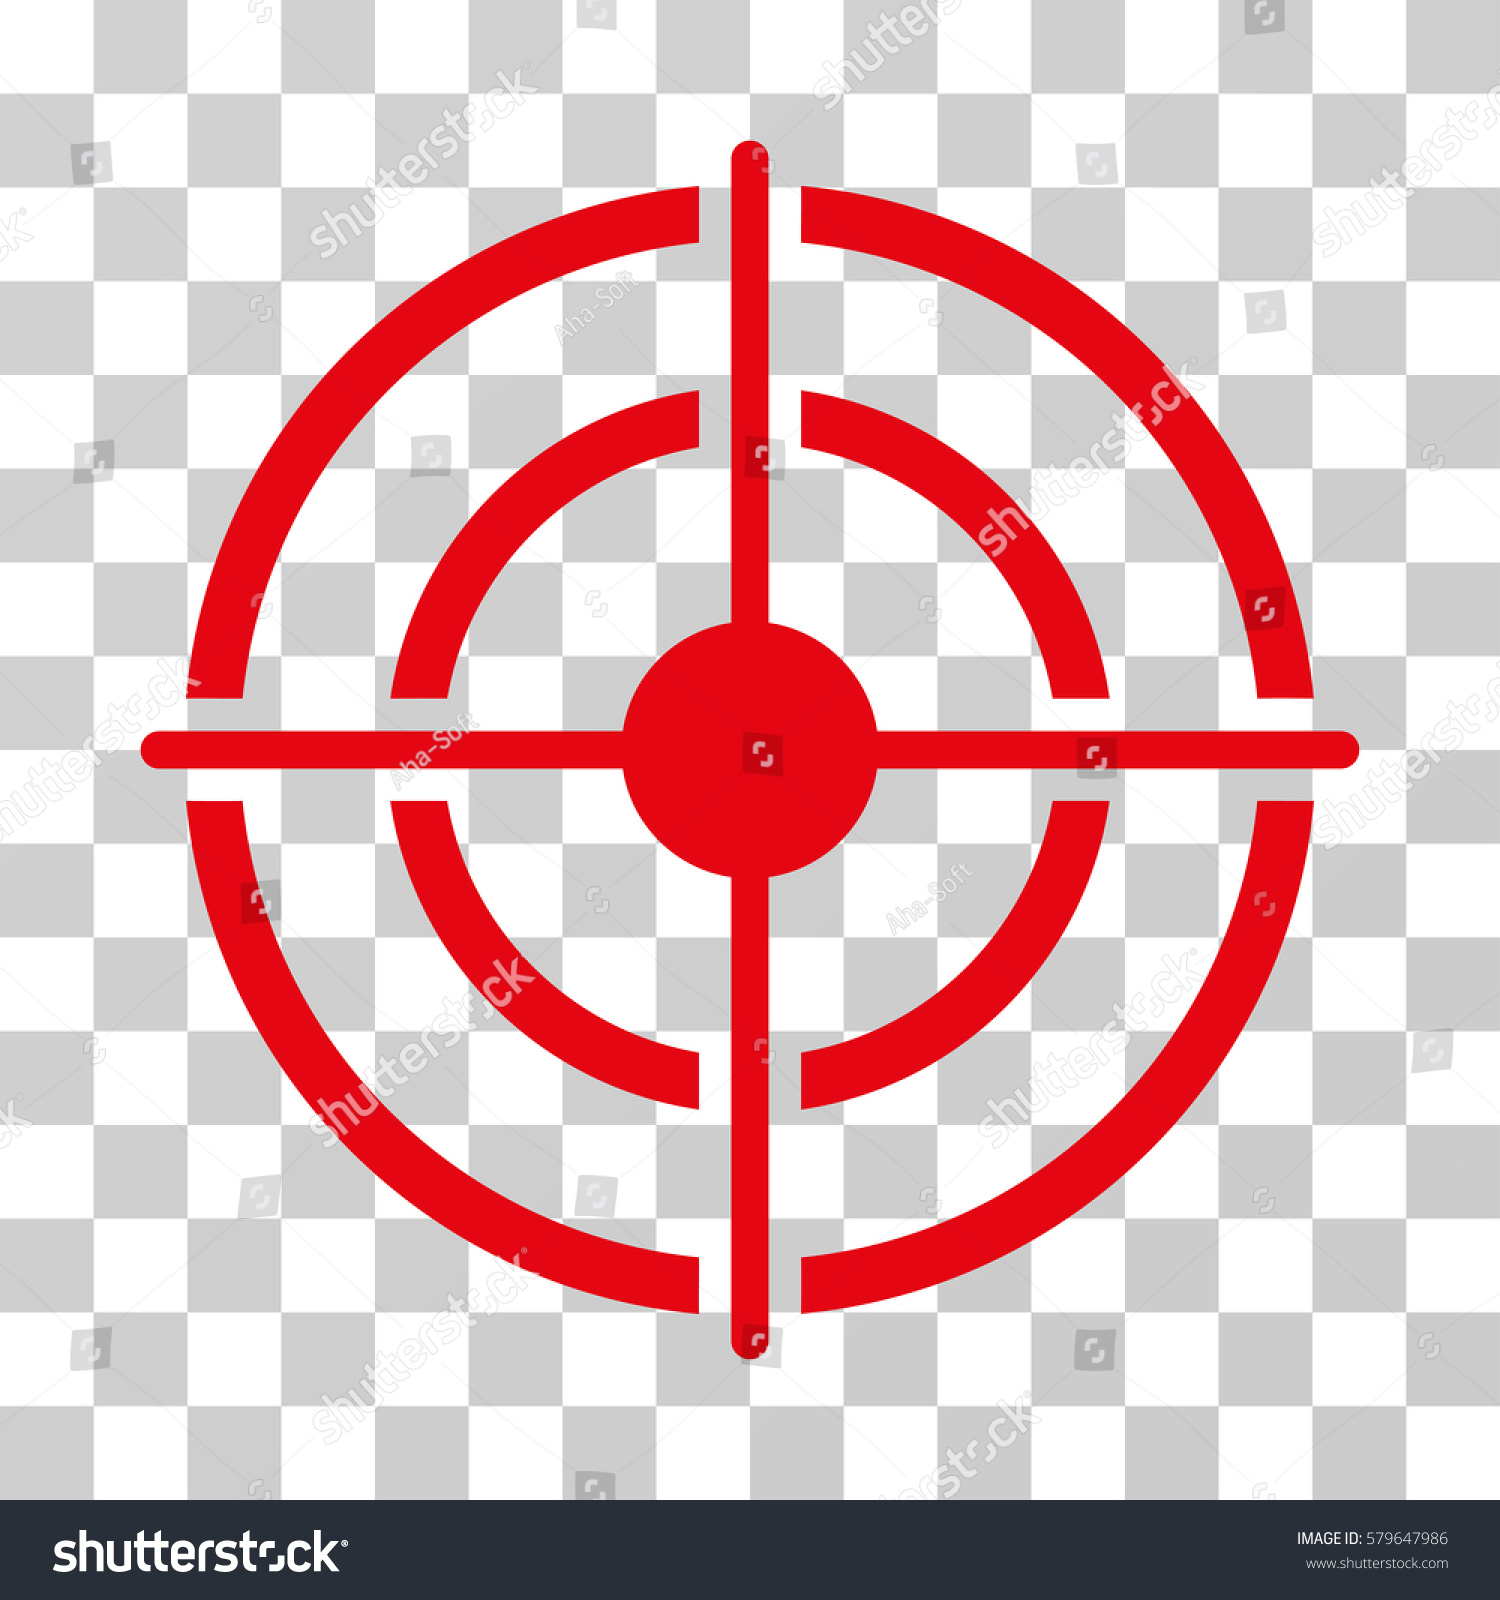 Target Icon Vector Illustration Style Flat Stock Vector Royalty Free 579647986